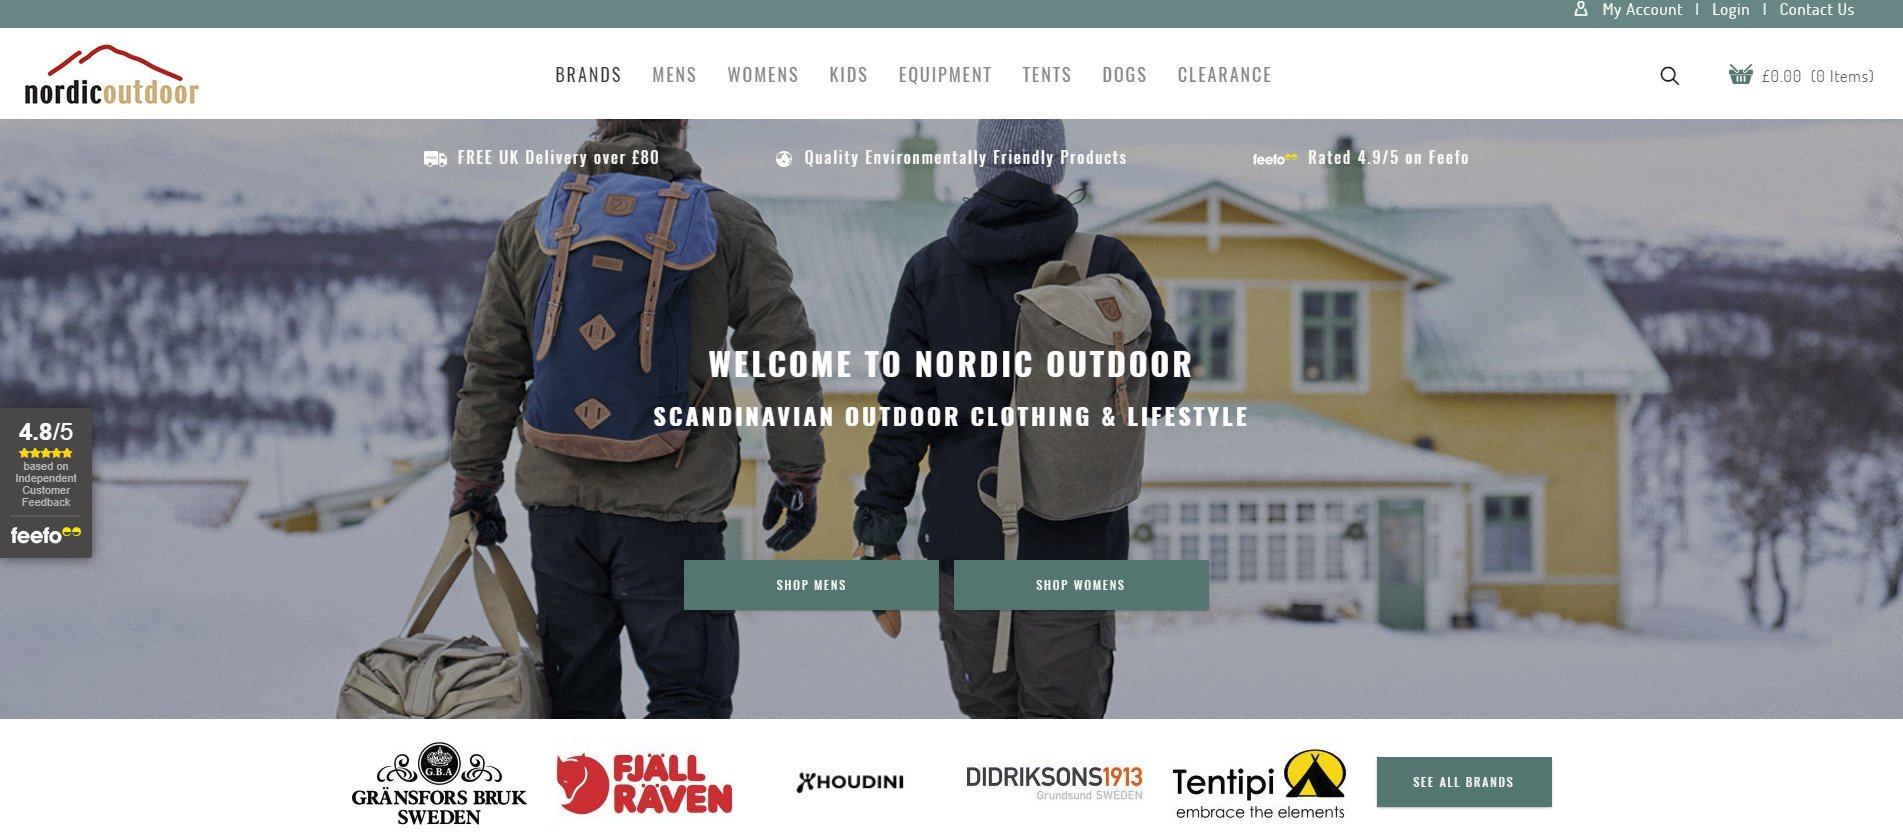 Nordic-Outdoor-Homepage-Above-the-Fold